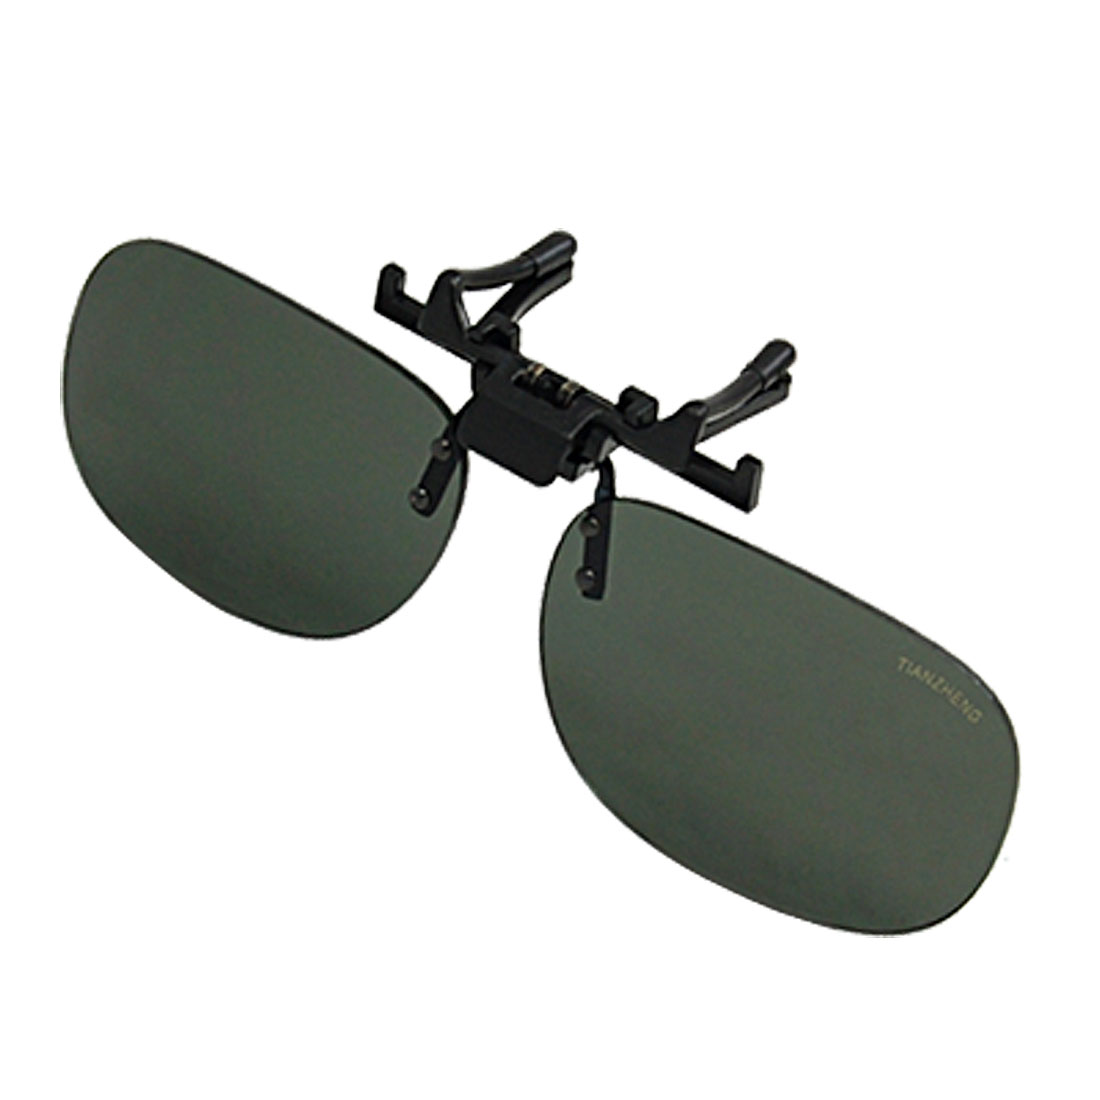 Darkgreen Plastic Lens Unisex Cool Clip-on Prescription Glasses